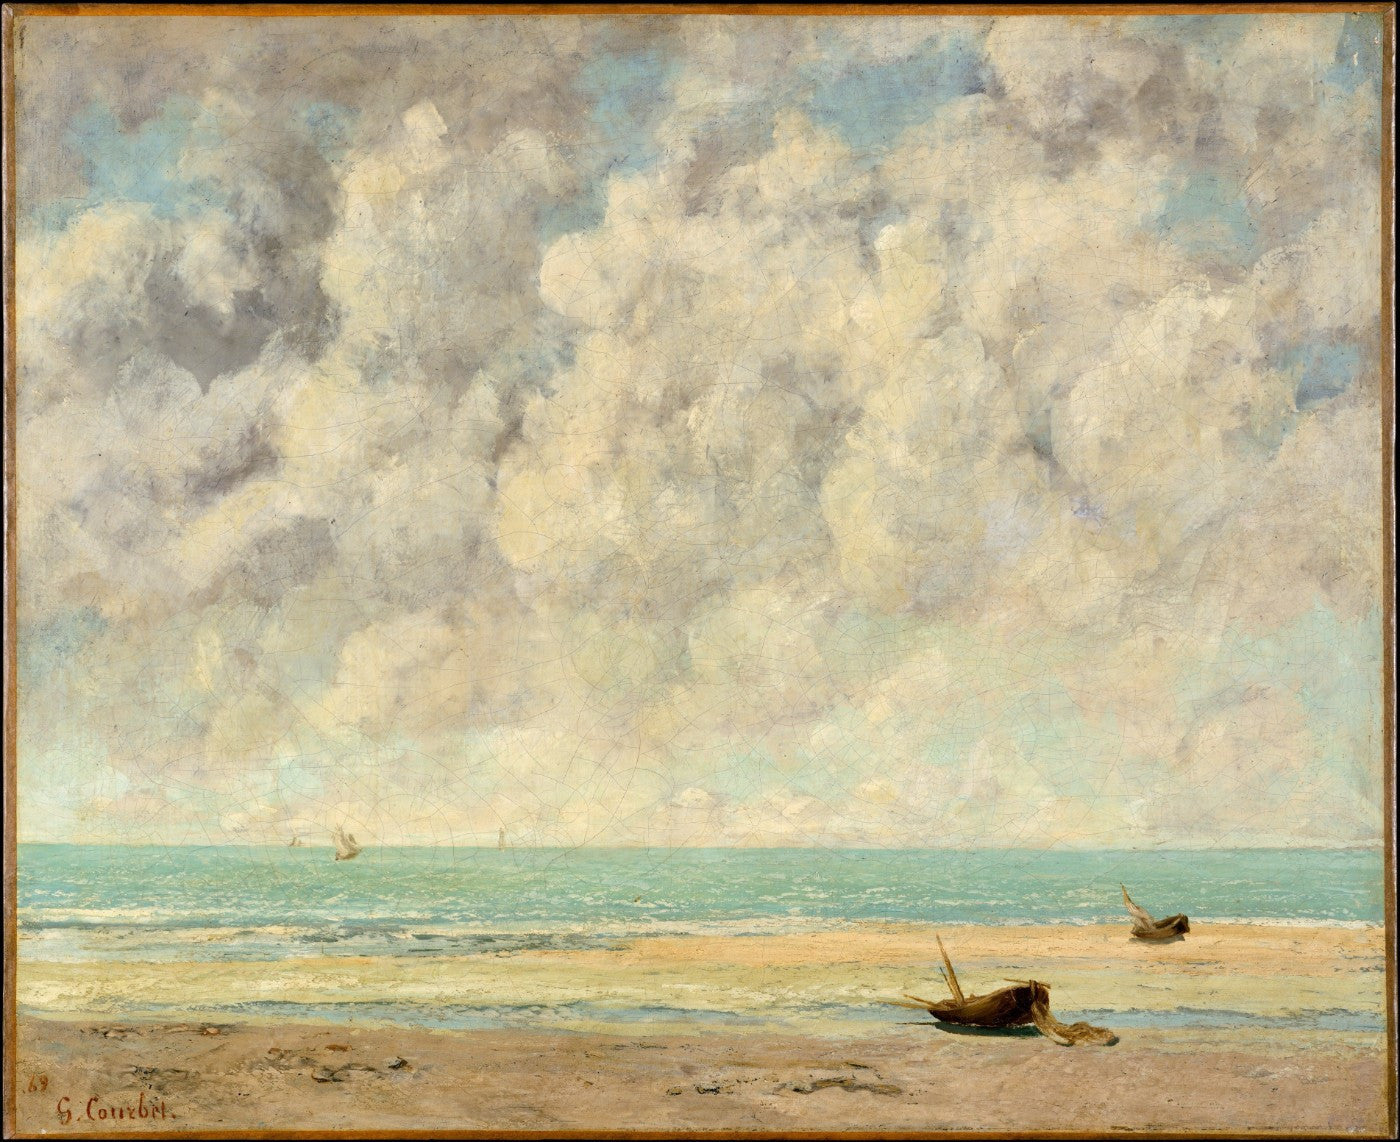 The Calm Sea - Large Art Prints by Gustave Courbet | Buy Posters ...